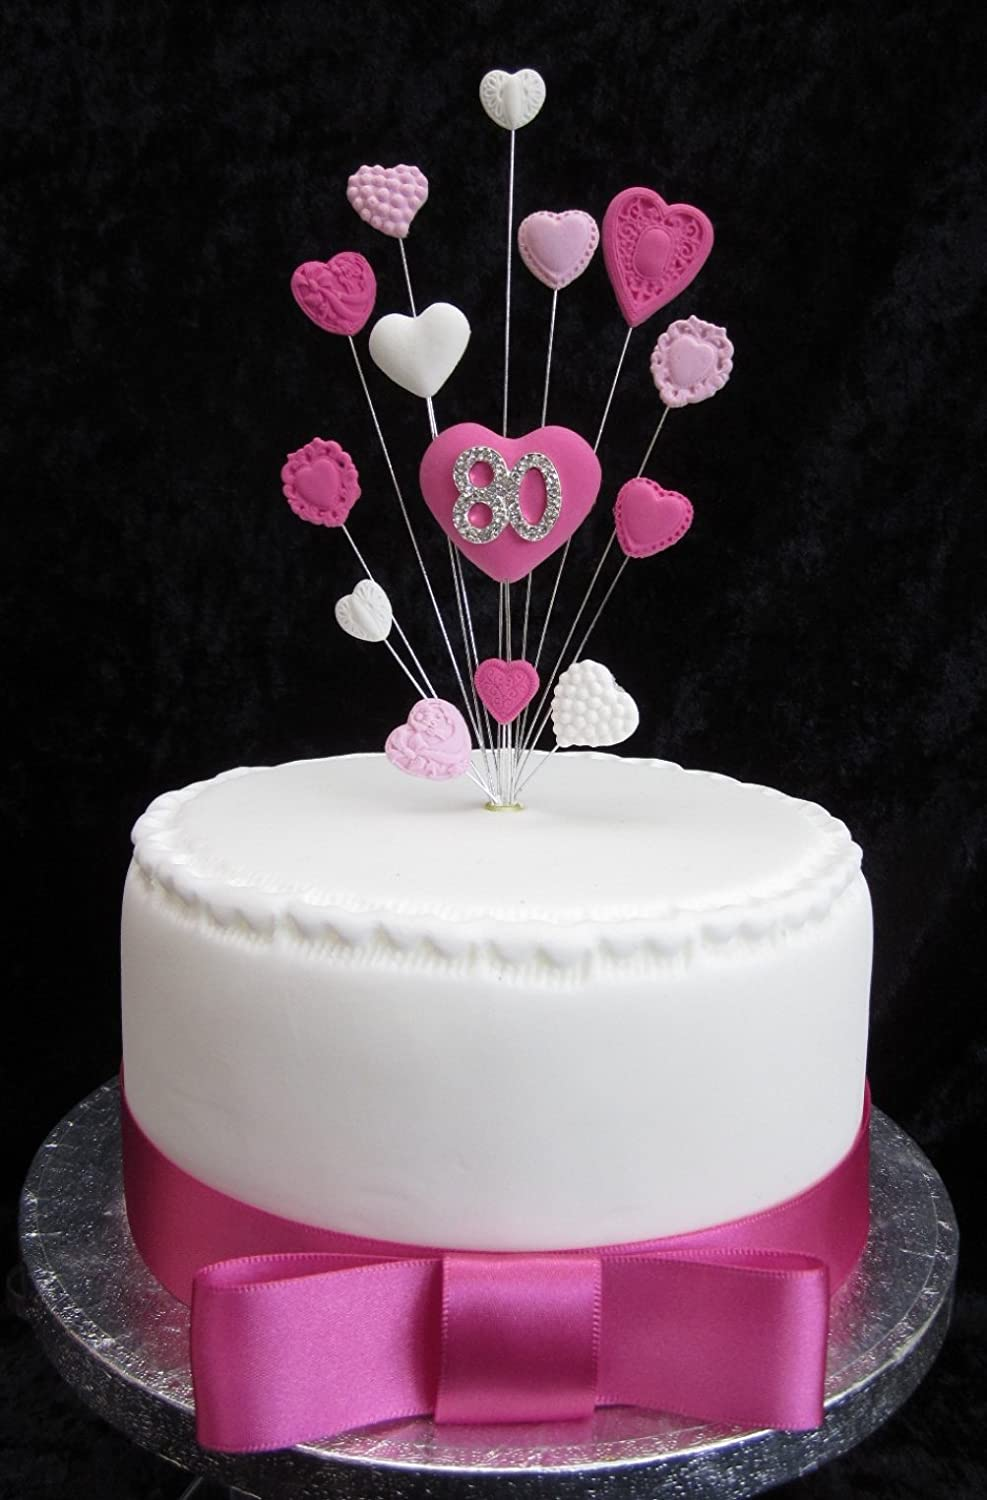 Fabulous 80Th Birthday Cake Topper Pinks And White Hearts Ideal For A Small Personalised Birthday Cards Paralily Jamesorg